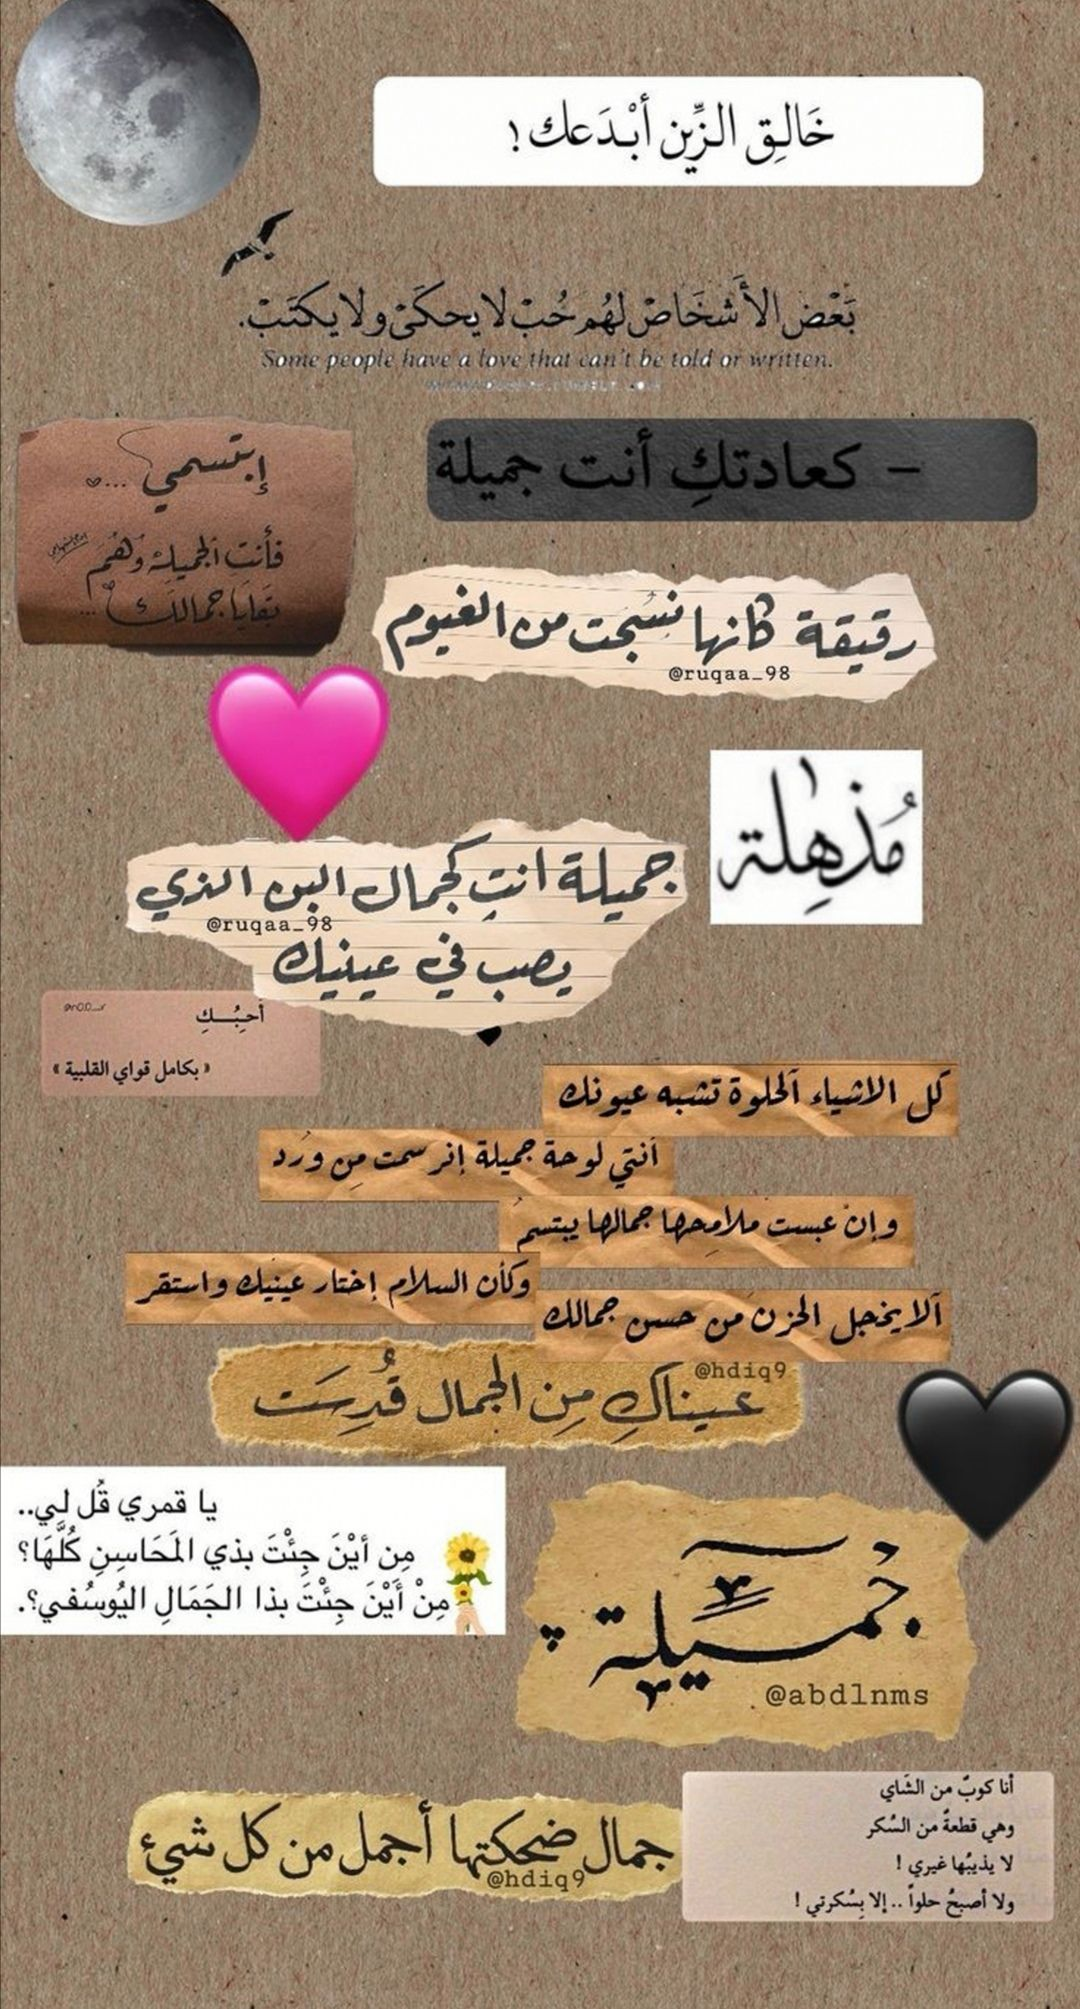 أحبك يا قلبي غ ي ن Iphone Wallpaper Quotes Love Calligraphy Quotes Love Love Quotes Wallpaper